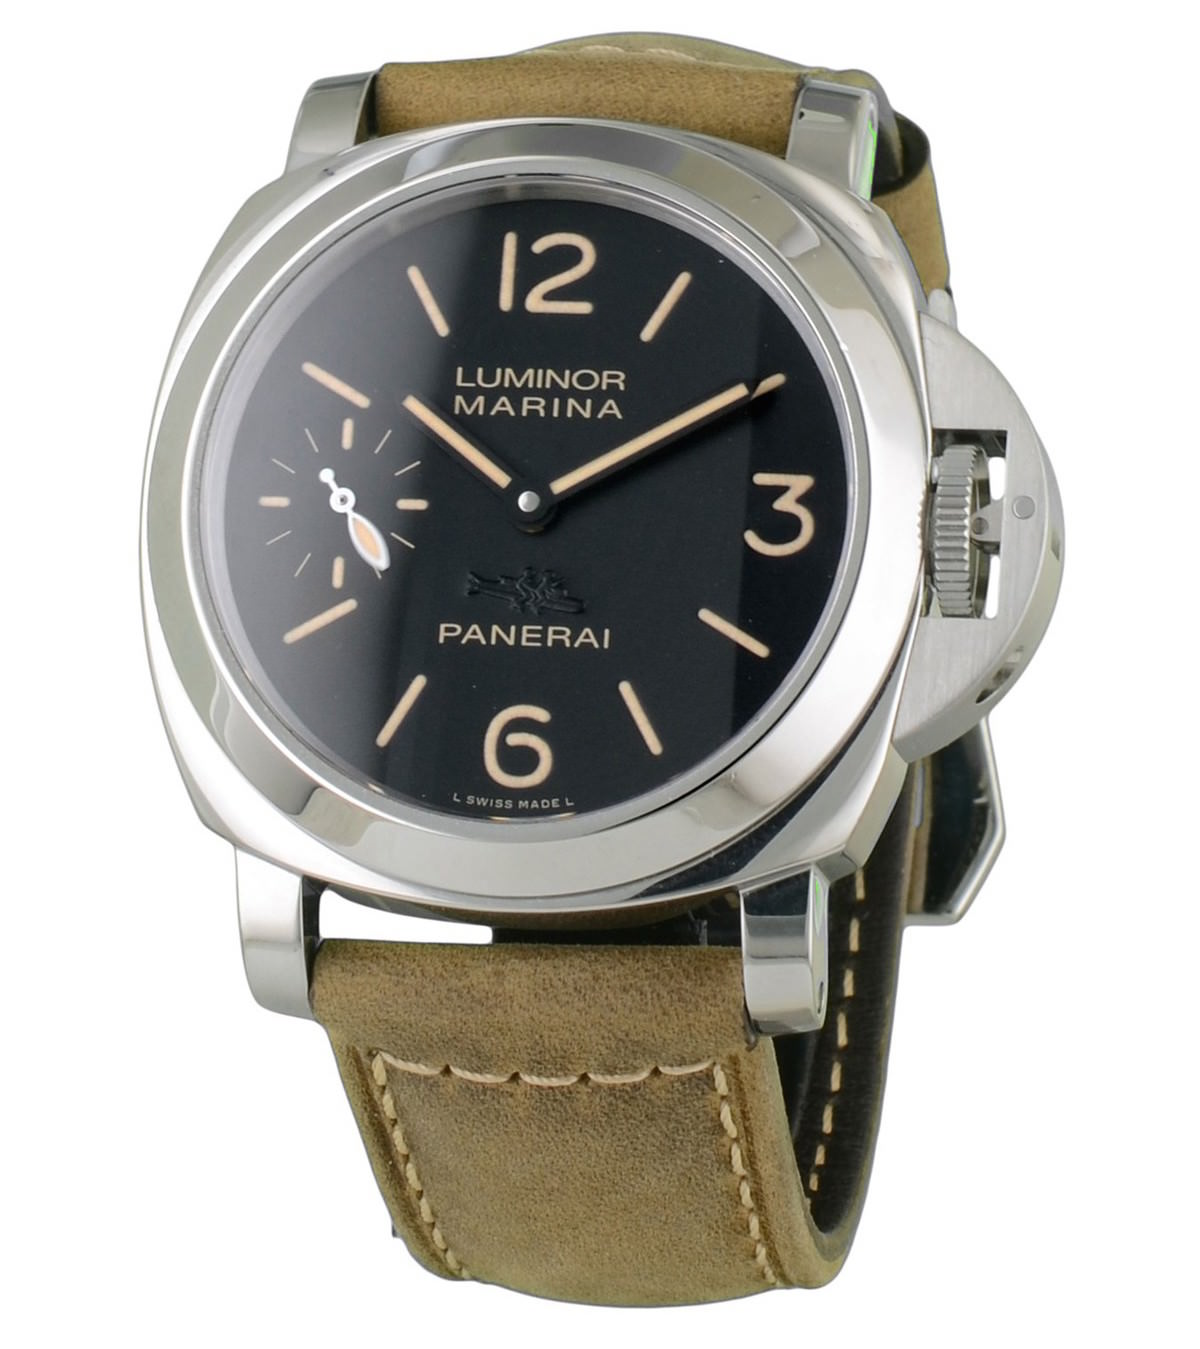 panerai luminor d'occasion